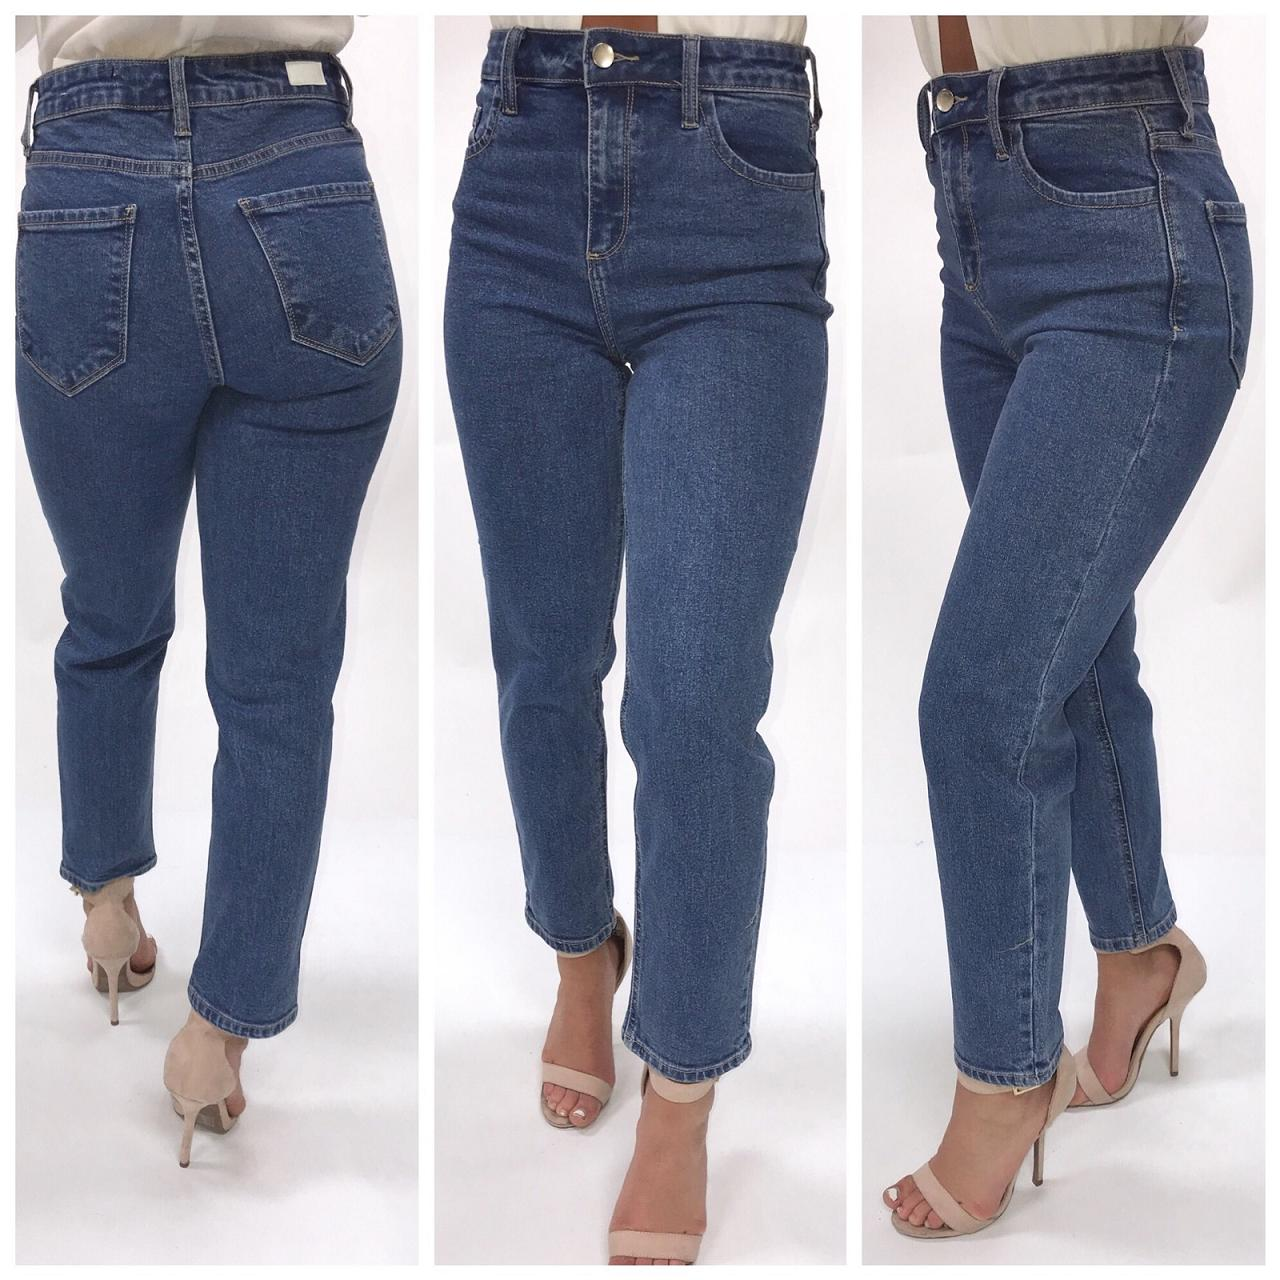 Empire State Jeans